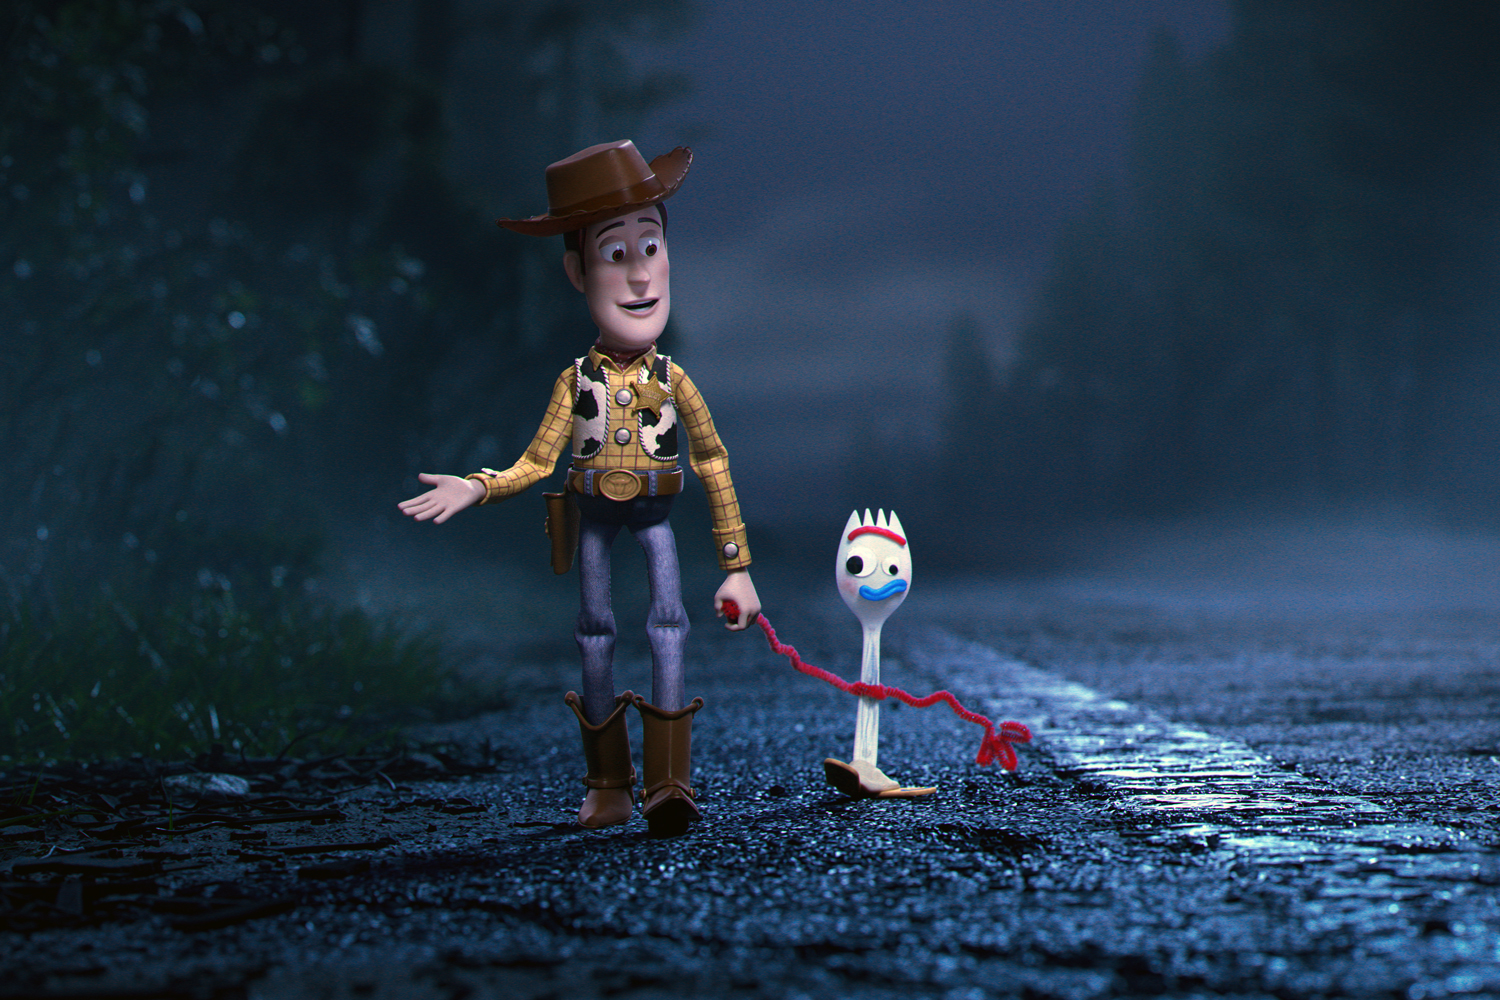 'Toy Story 4' Movie: Peter Travers Reviews - Rolling Stone